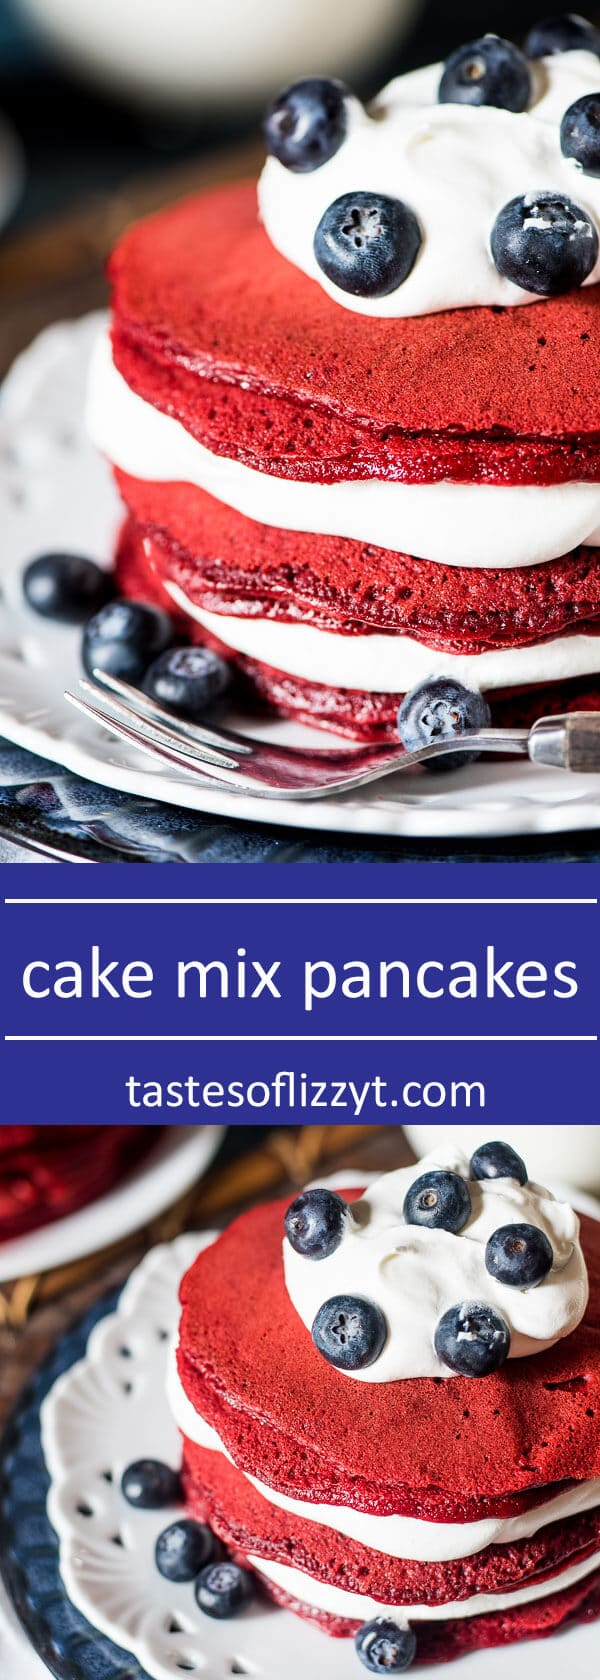 Cake Mix Pancakes 5 Ingredients with Any Flavor Box Cake Mix